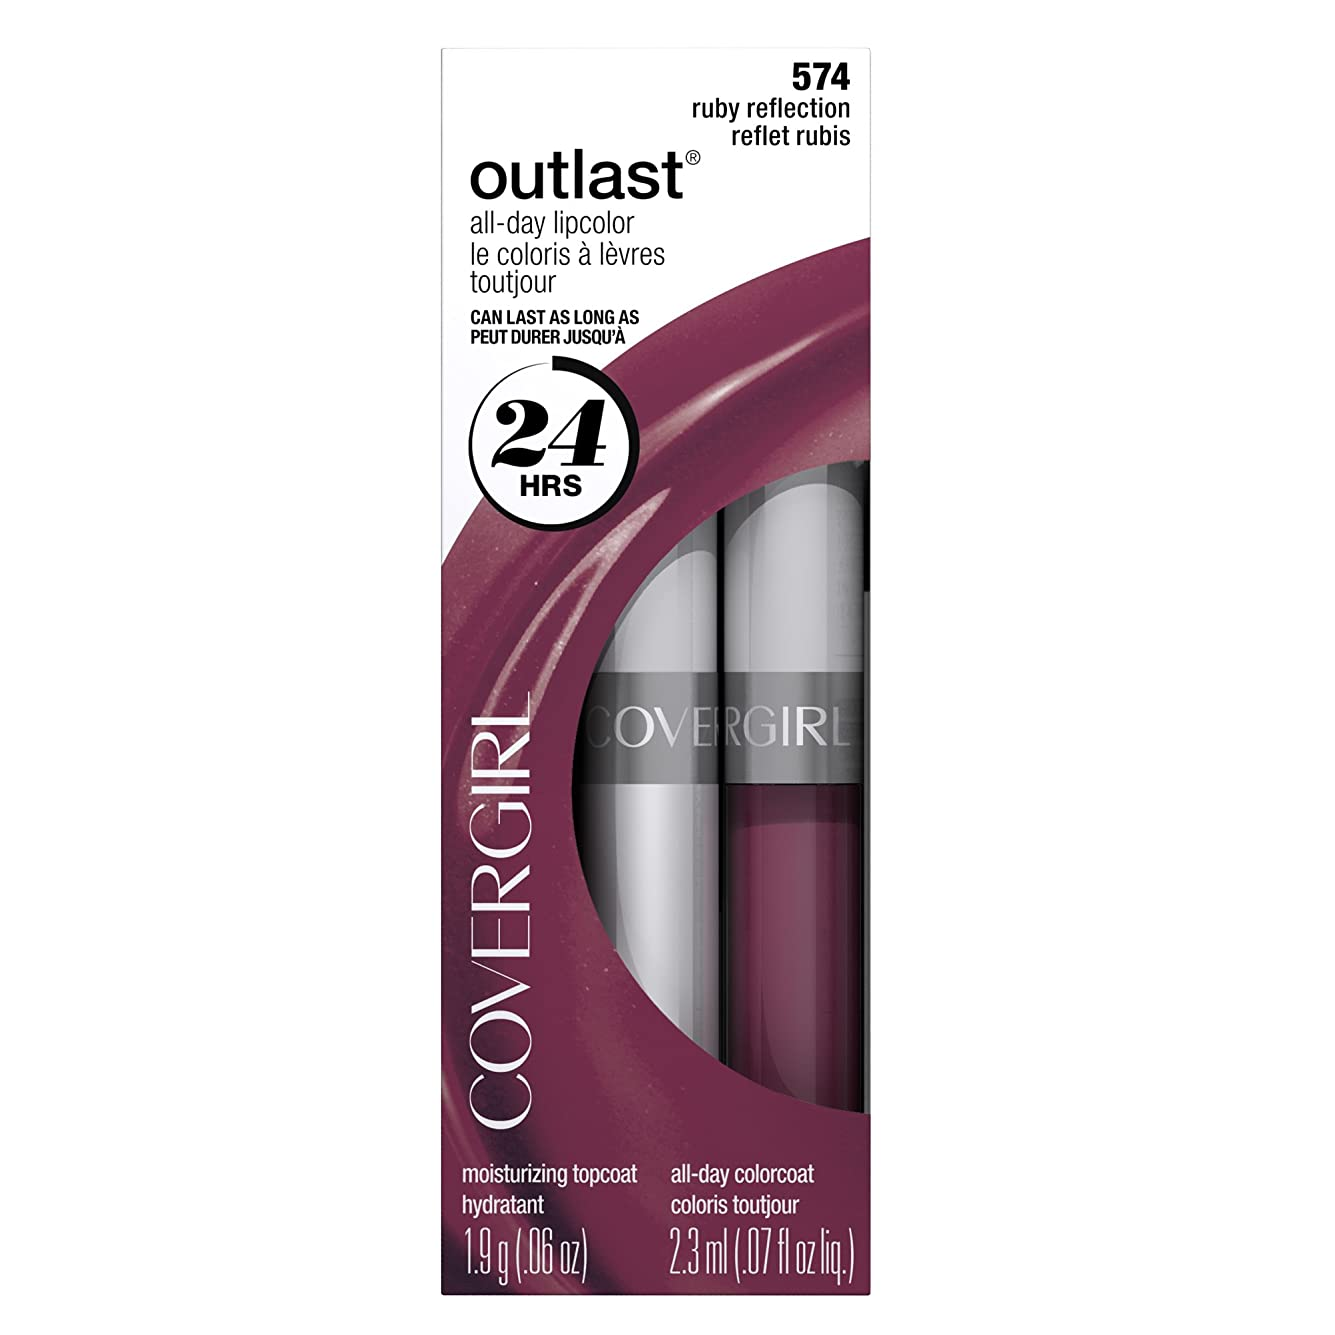 の撤退夫COVERGIRL OUTLAST ALL-DAY LIP COLOR #574 RUBY REFLECTION